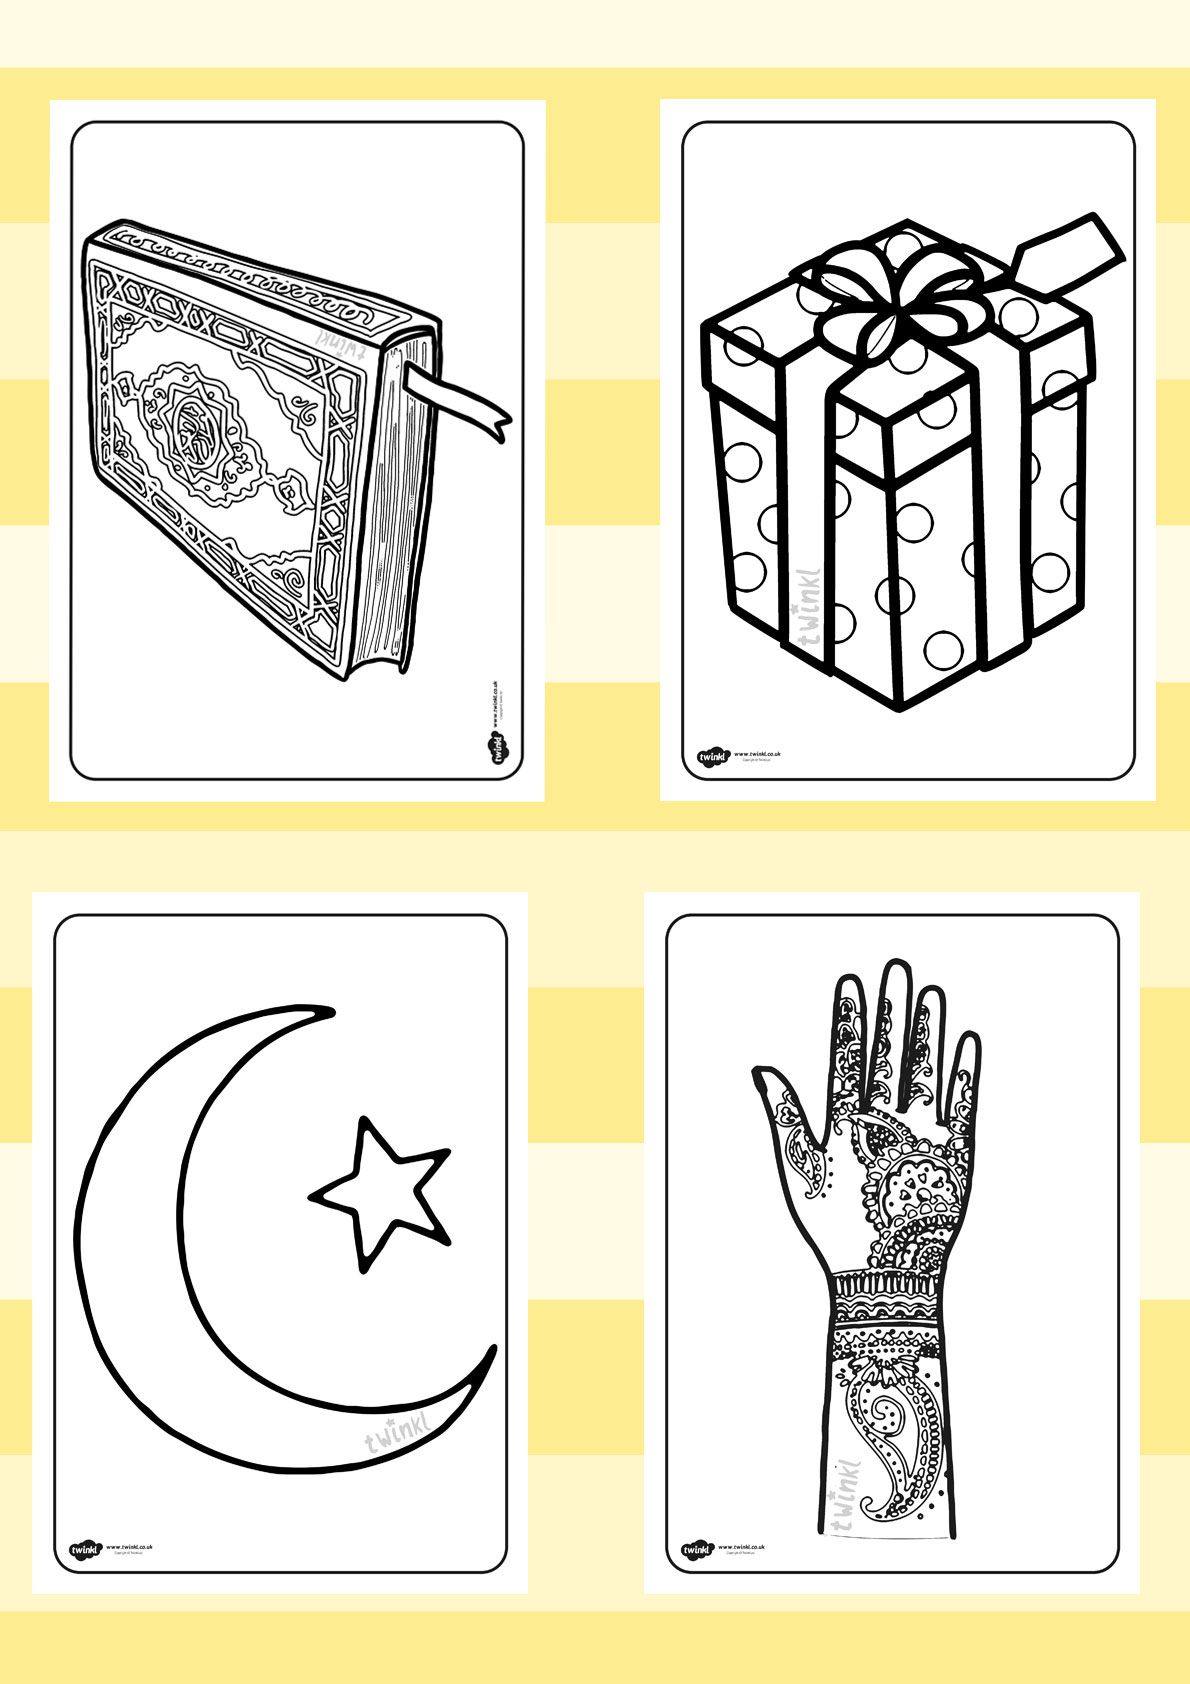 Twinkl Resources Gt Gt Eid Colouring Sheets Gt Gt Printable Resources For Primary Eyfs Ks1 And Sen